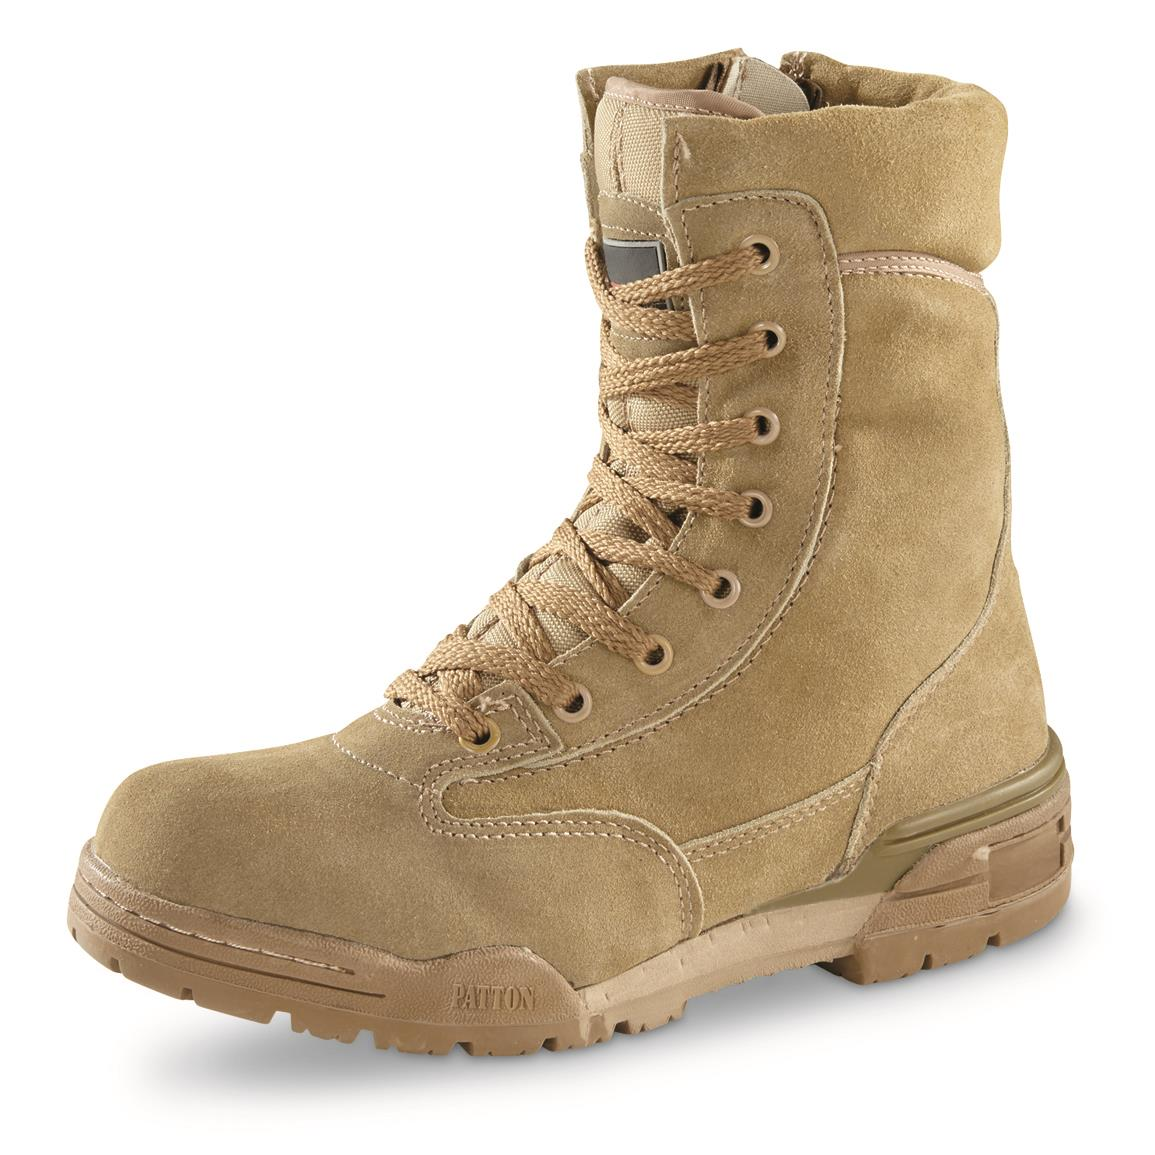 e9539ef8699 Italian Military Surplus Waterproof Suede Combat Boots, New - 700163 ...